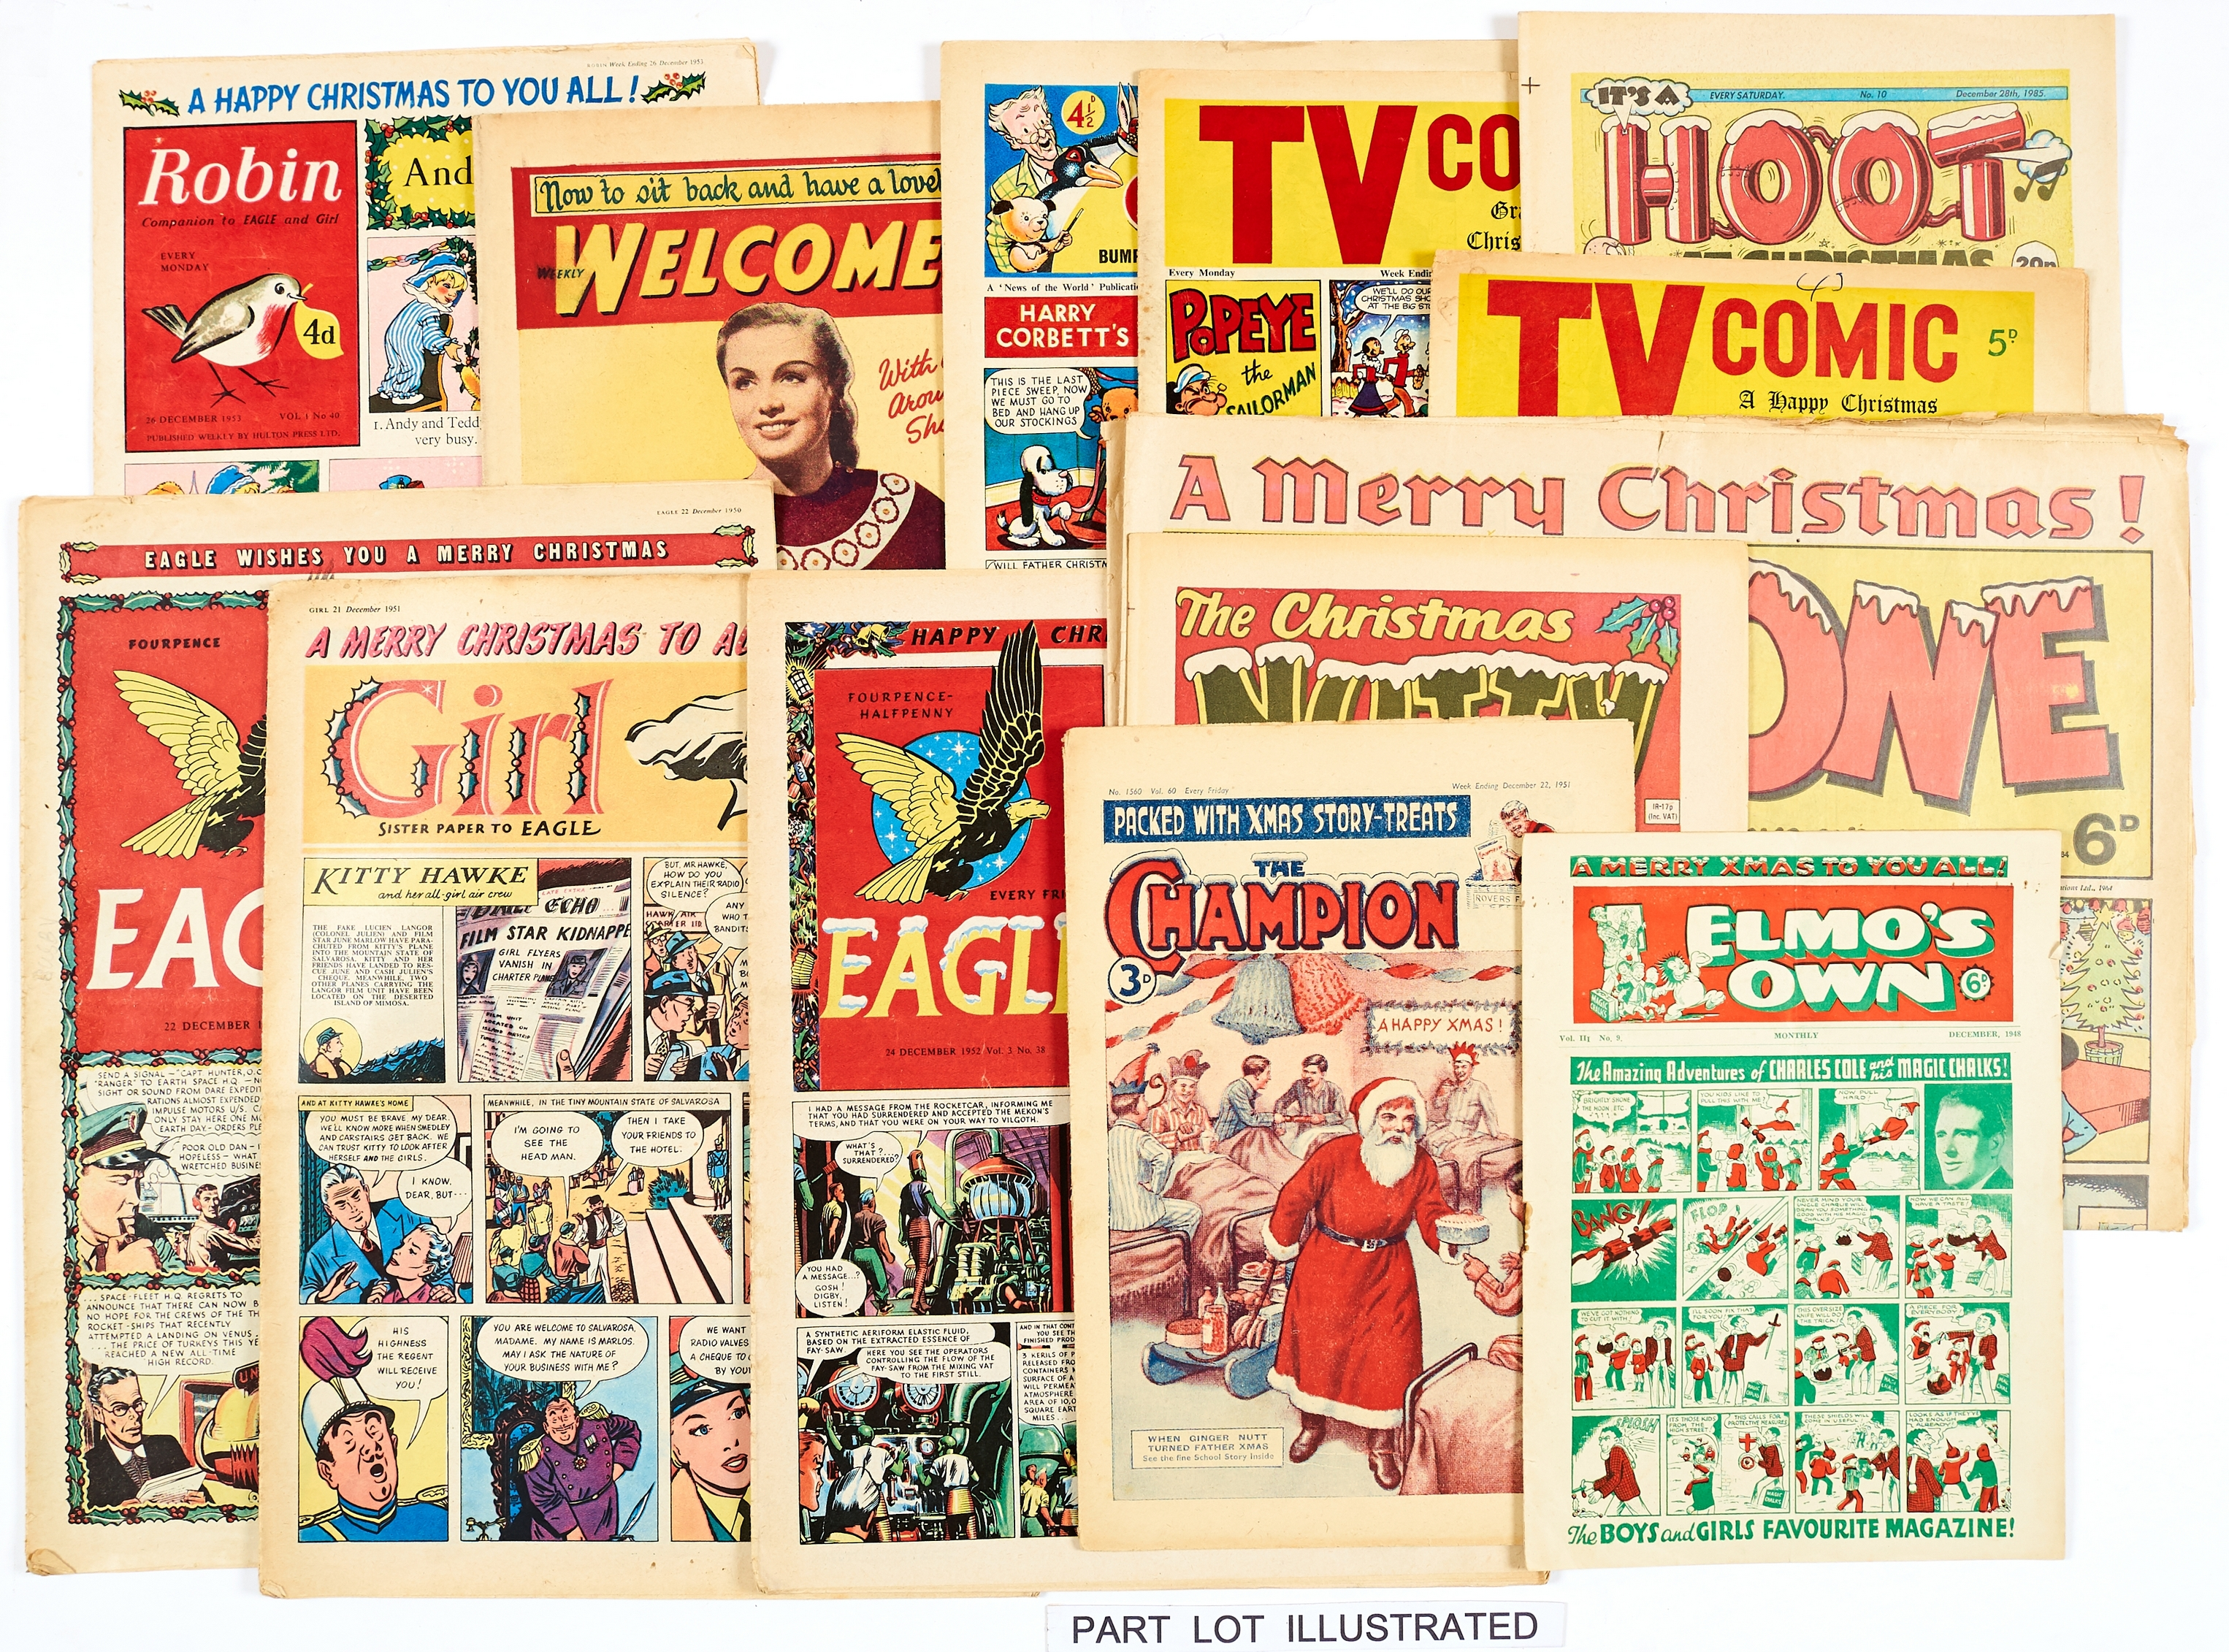 Lot 36 - Christmas issues (1940s-80s). Elmo's Own (1948), Merry Maker (1940s), Champion (1951, '52), Eagle (